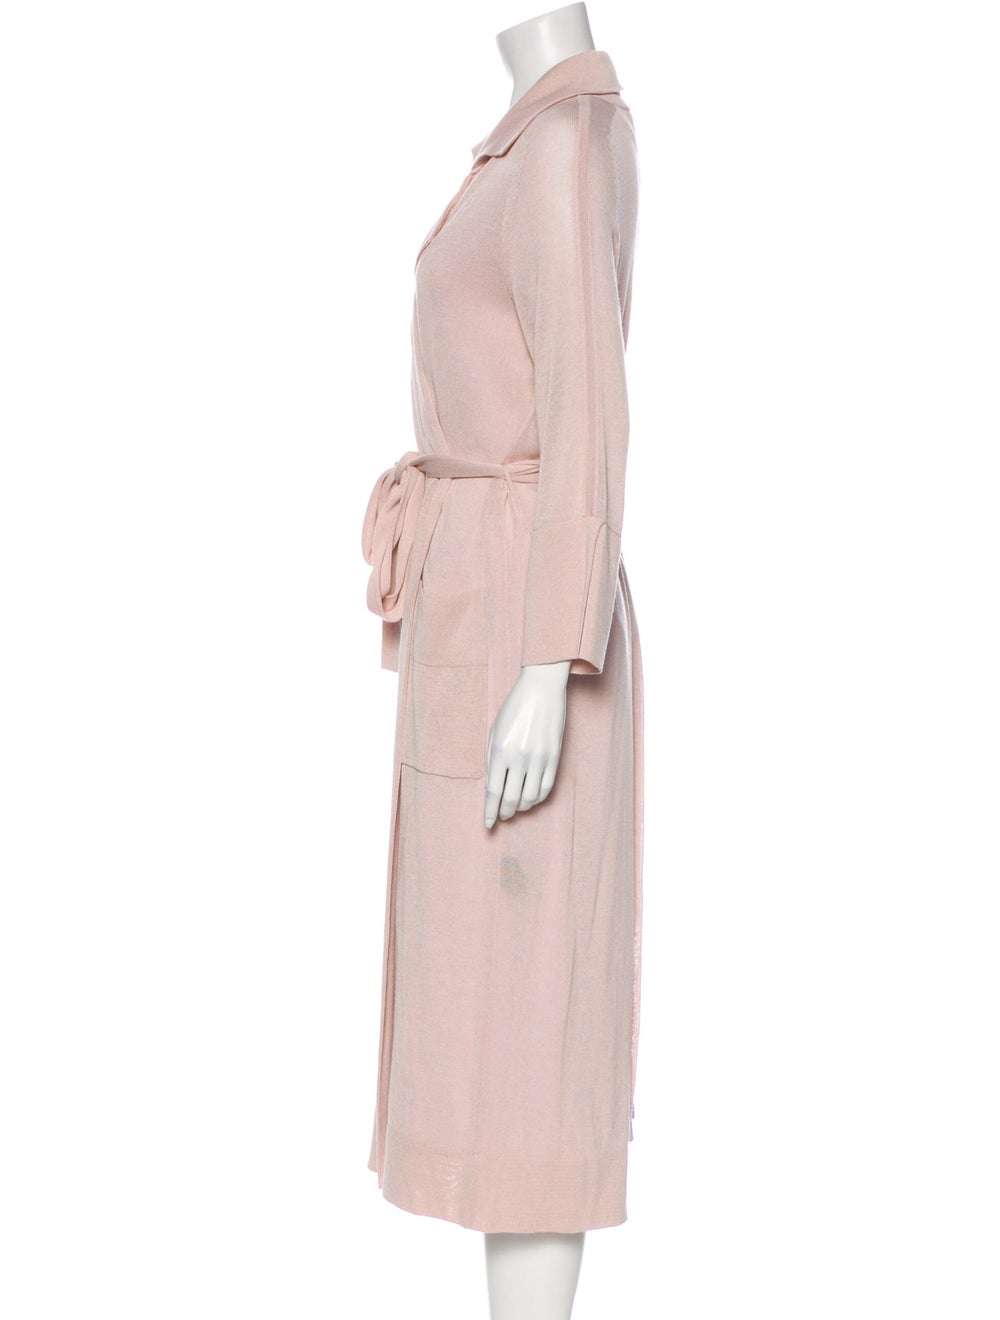 Soyer Trench Coat Pink - image 2